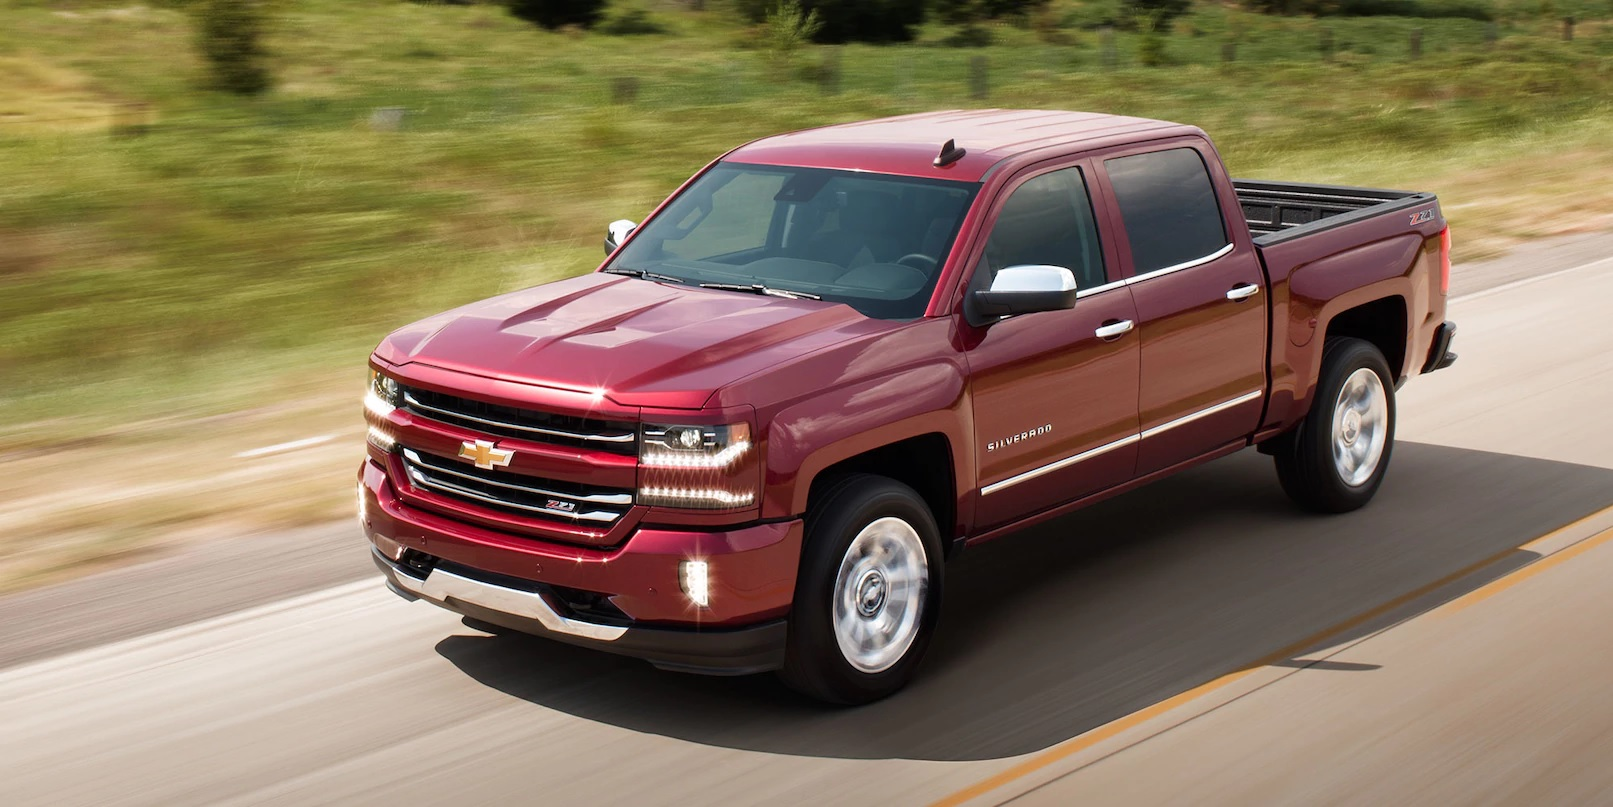 2018 Chevrolet Silverado 1500 for Sale in Sylvania, OH